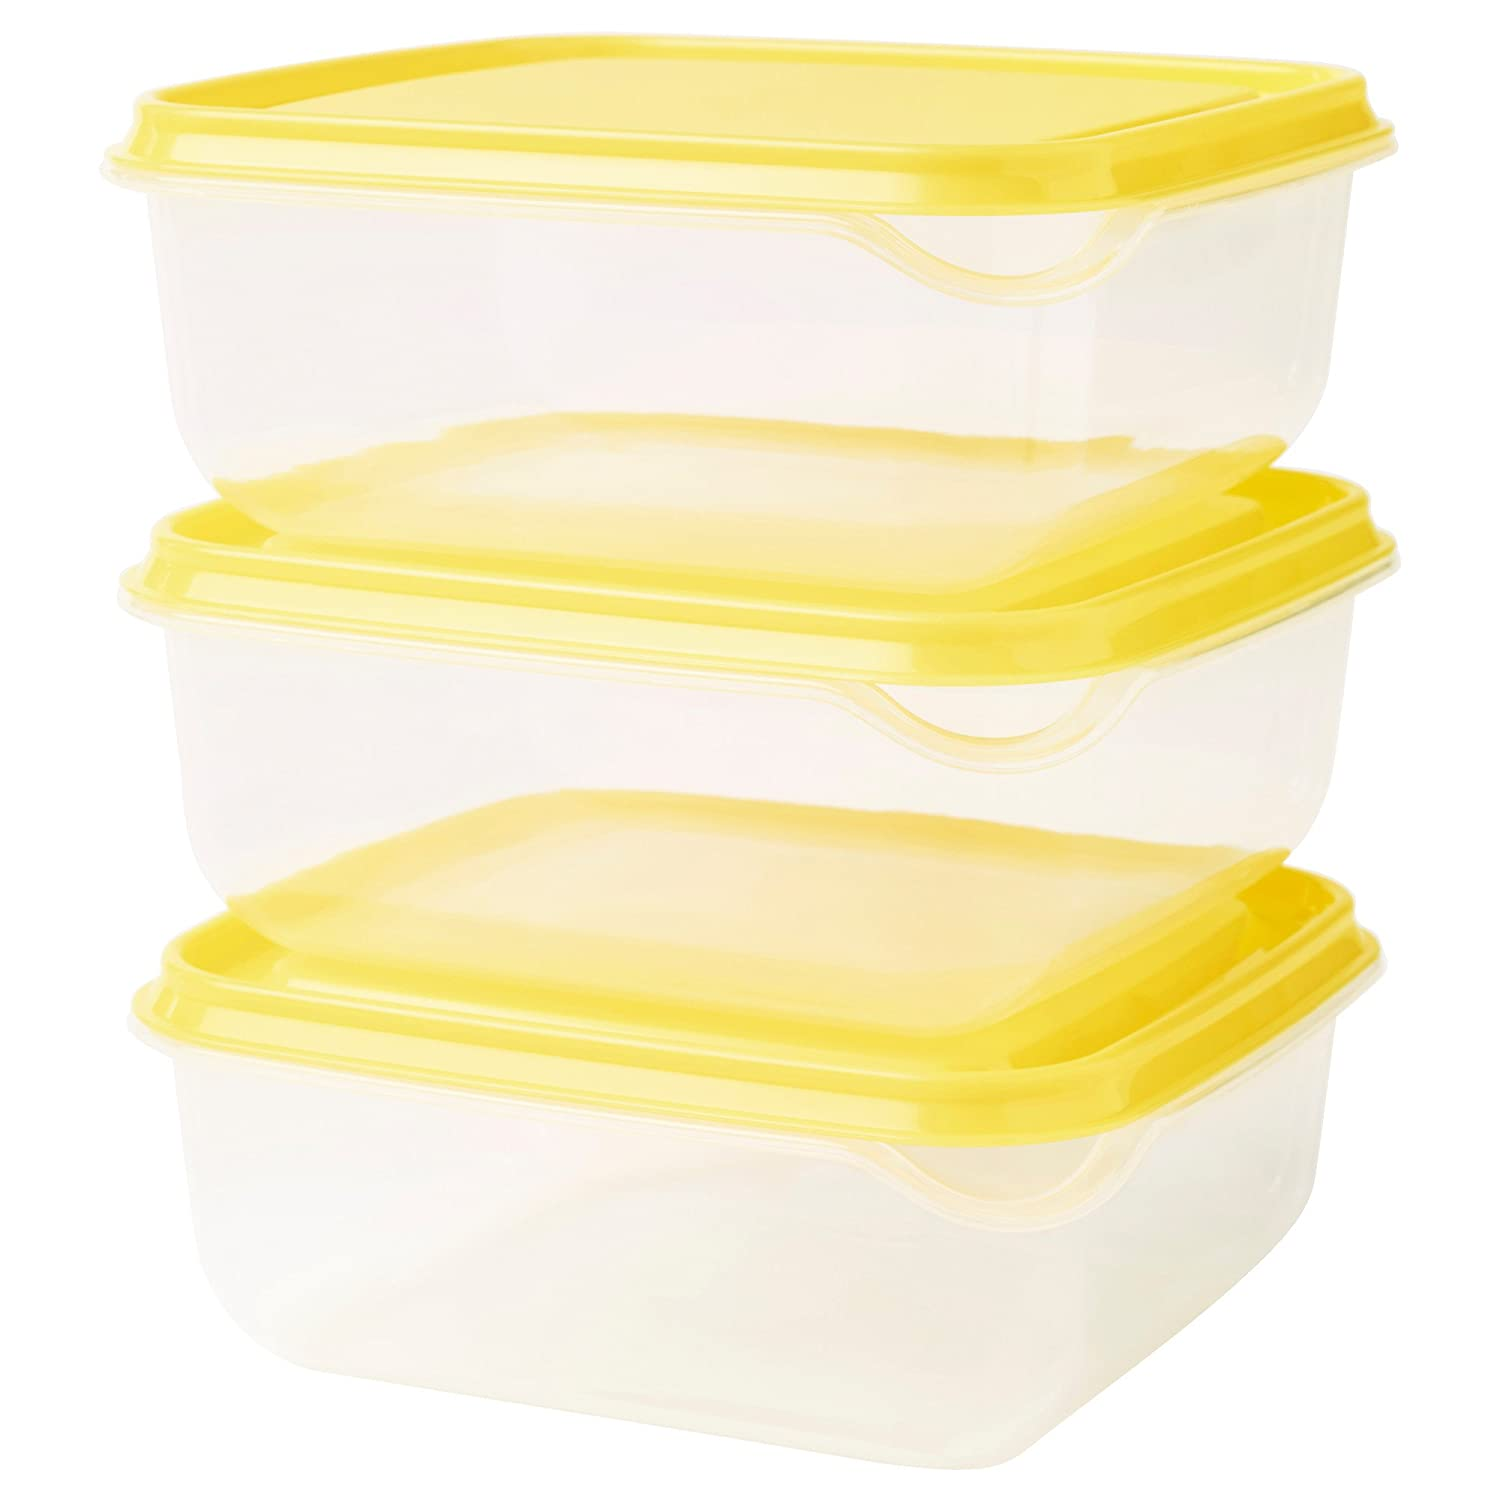 IKEA PRUTA Food Storage Square 14x14x2.25 Container 20 oz, 6 Pack BPA-Free Plastic Clear Container, Yellow lid